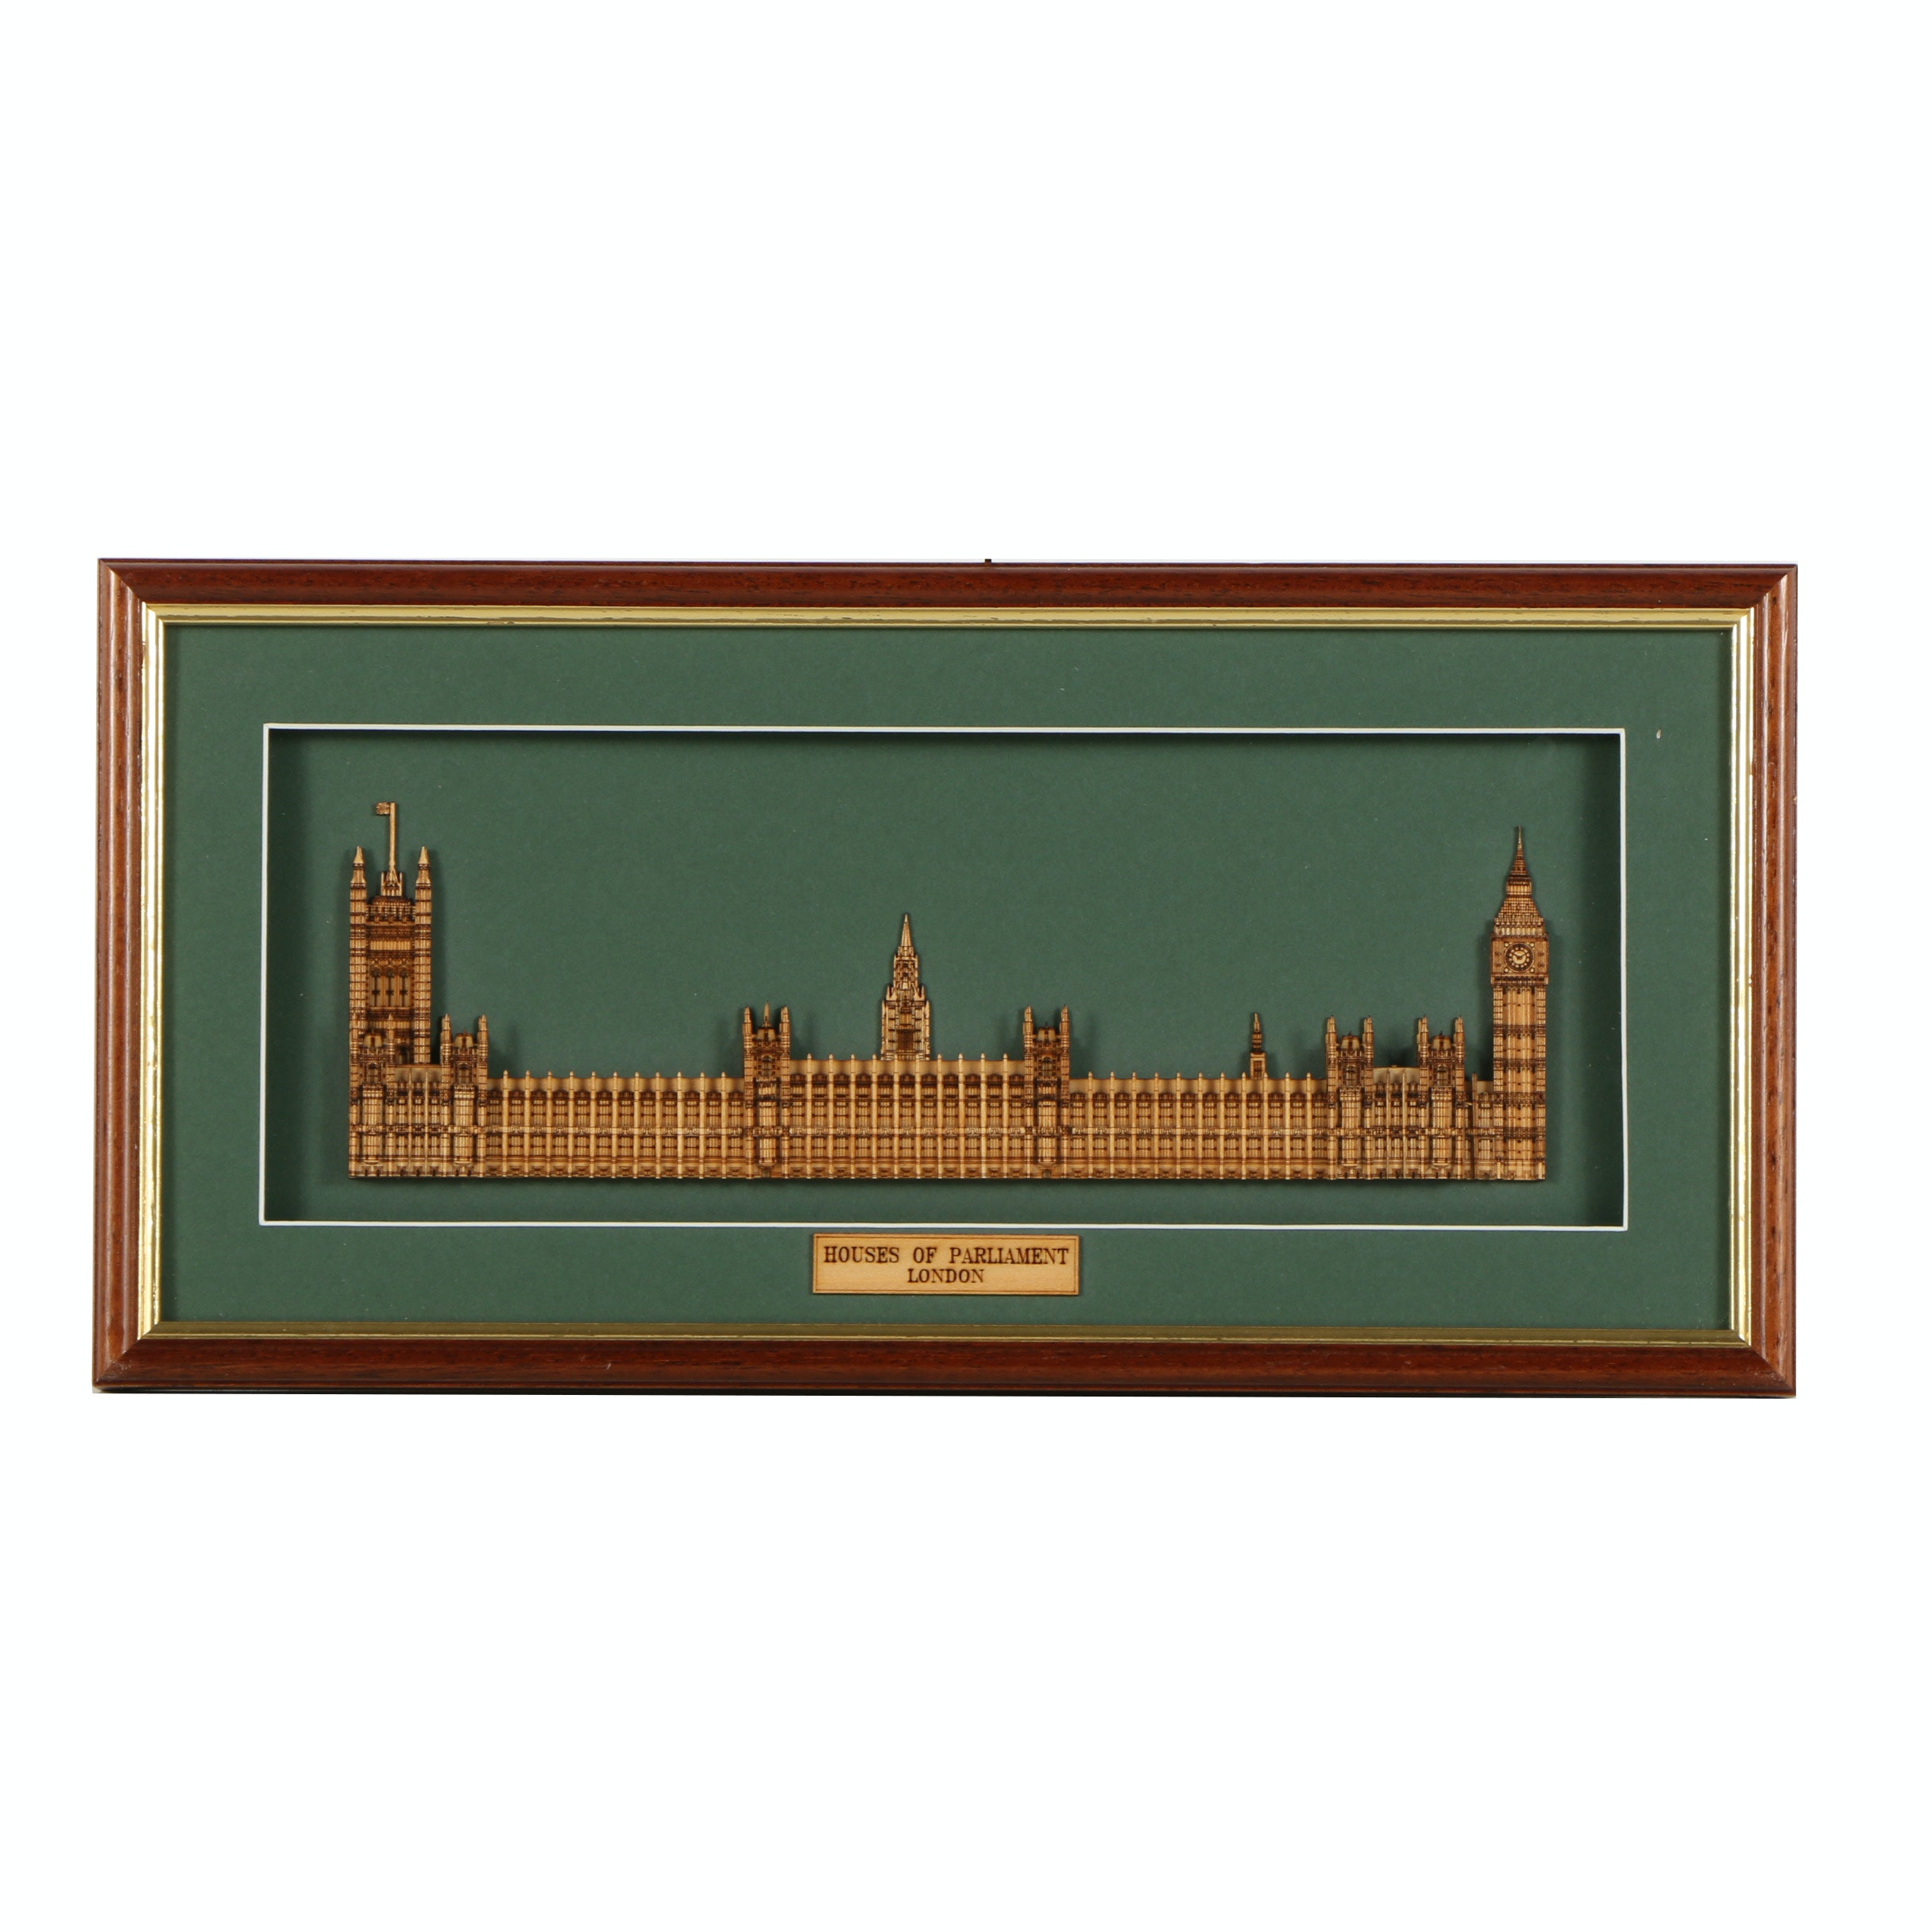 Laser Cut Wood Sculpture of the Houses of Parliament in London